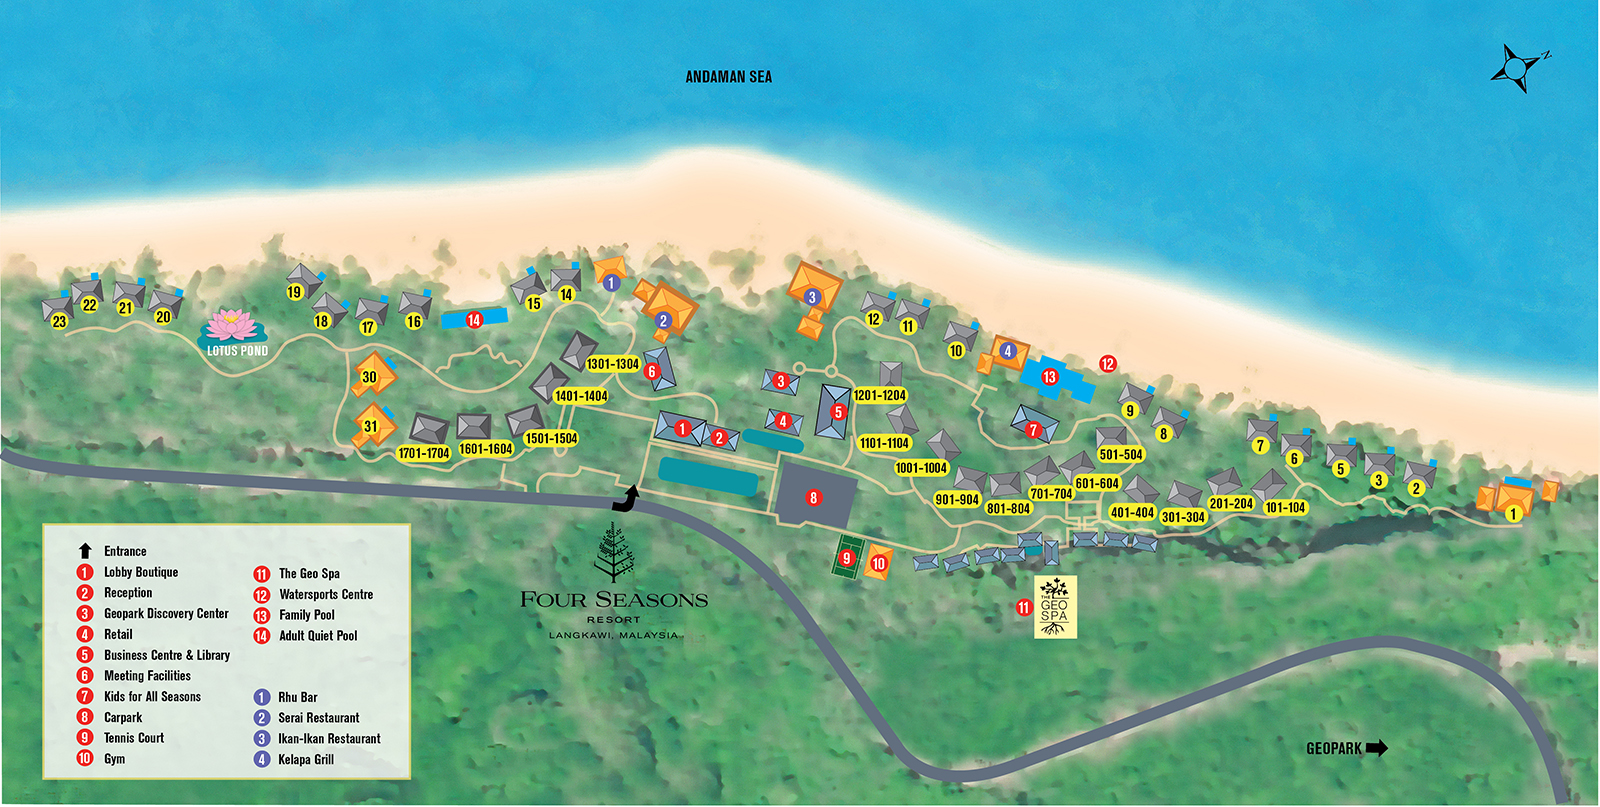 Resort Map of Four Seasons Resort Langkawi